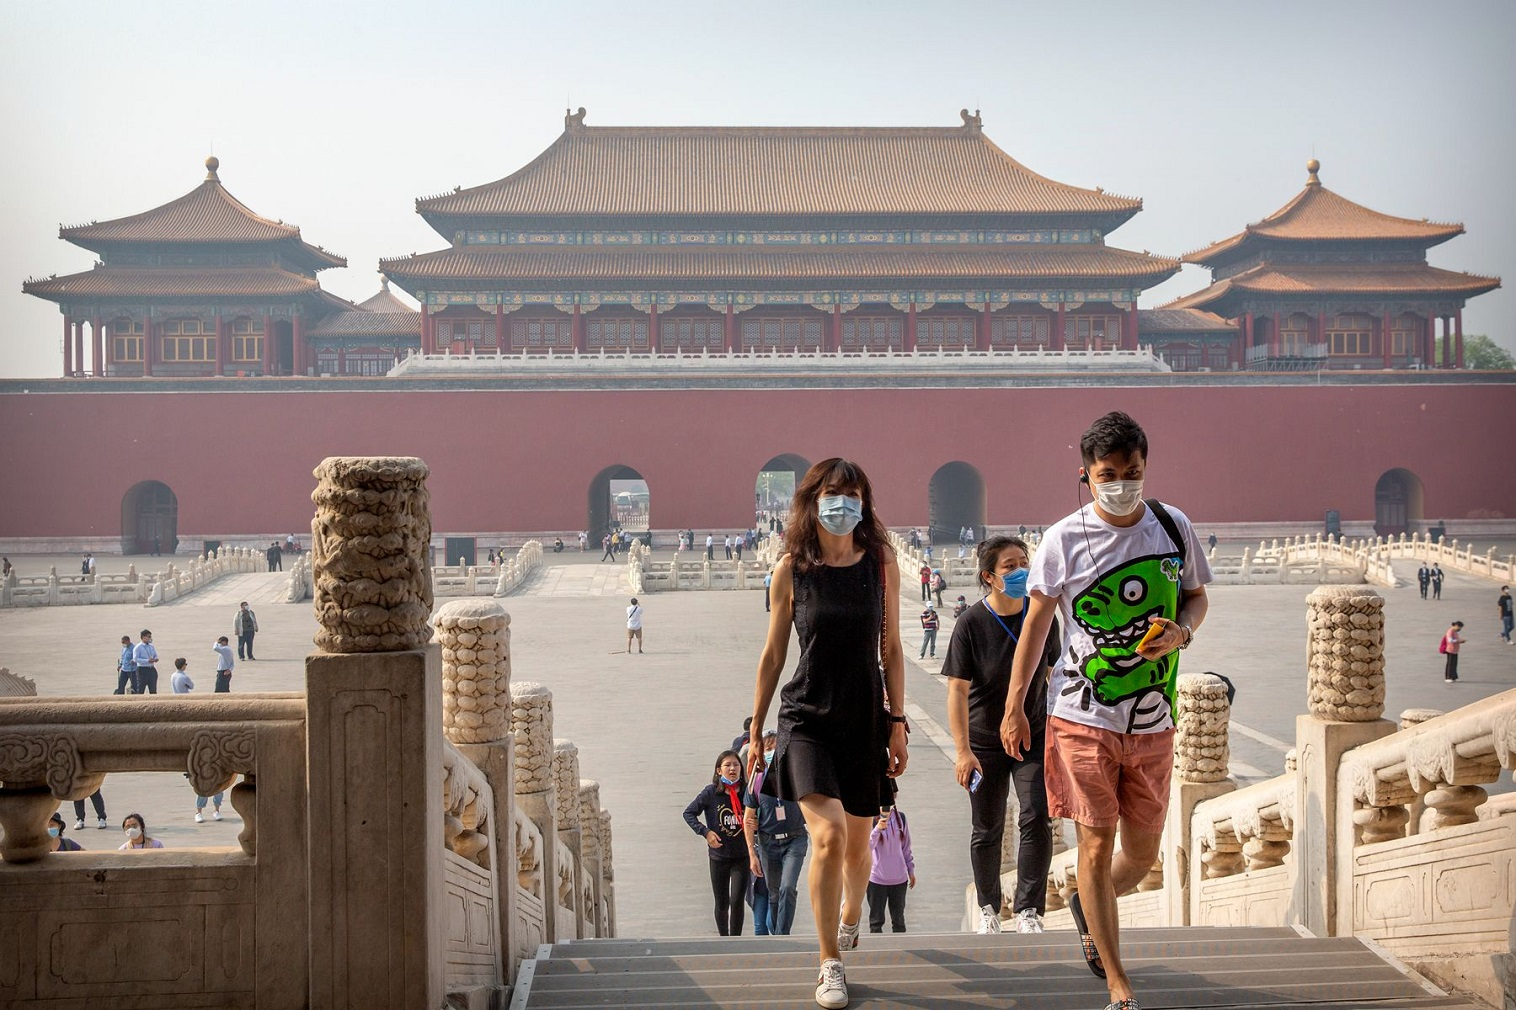 Wang Peng, a resident in south China's Shenzhen, could not wait to board a train to visit a world heritage site after he learned that trans-provincial group tours had resumed following months-long suspension due to the COVID-19 outbreak.